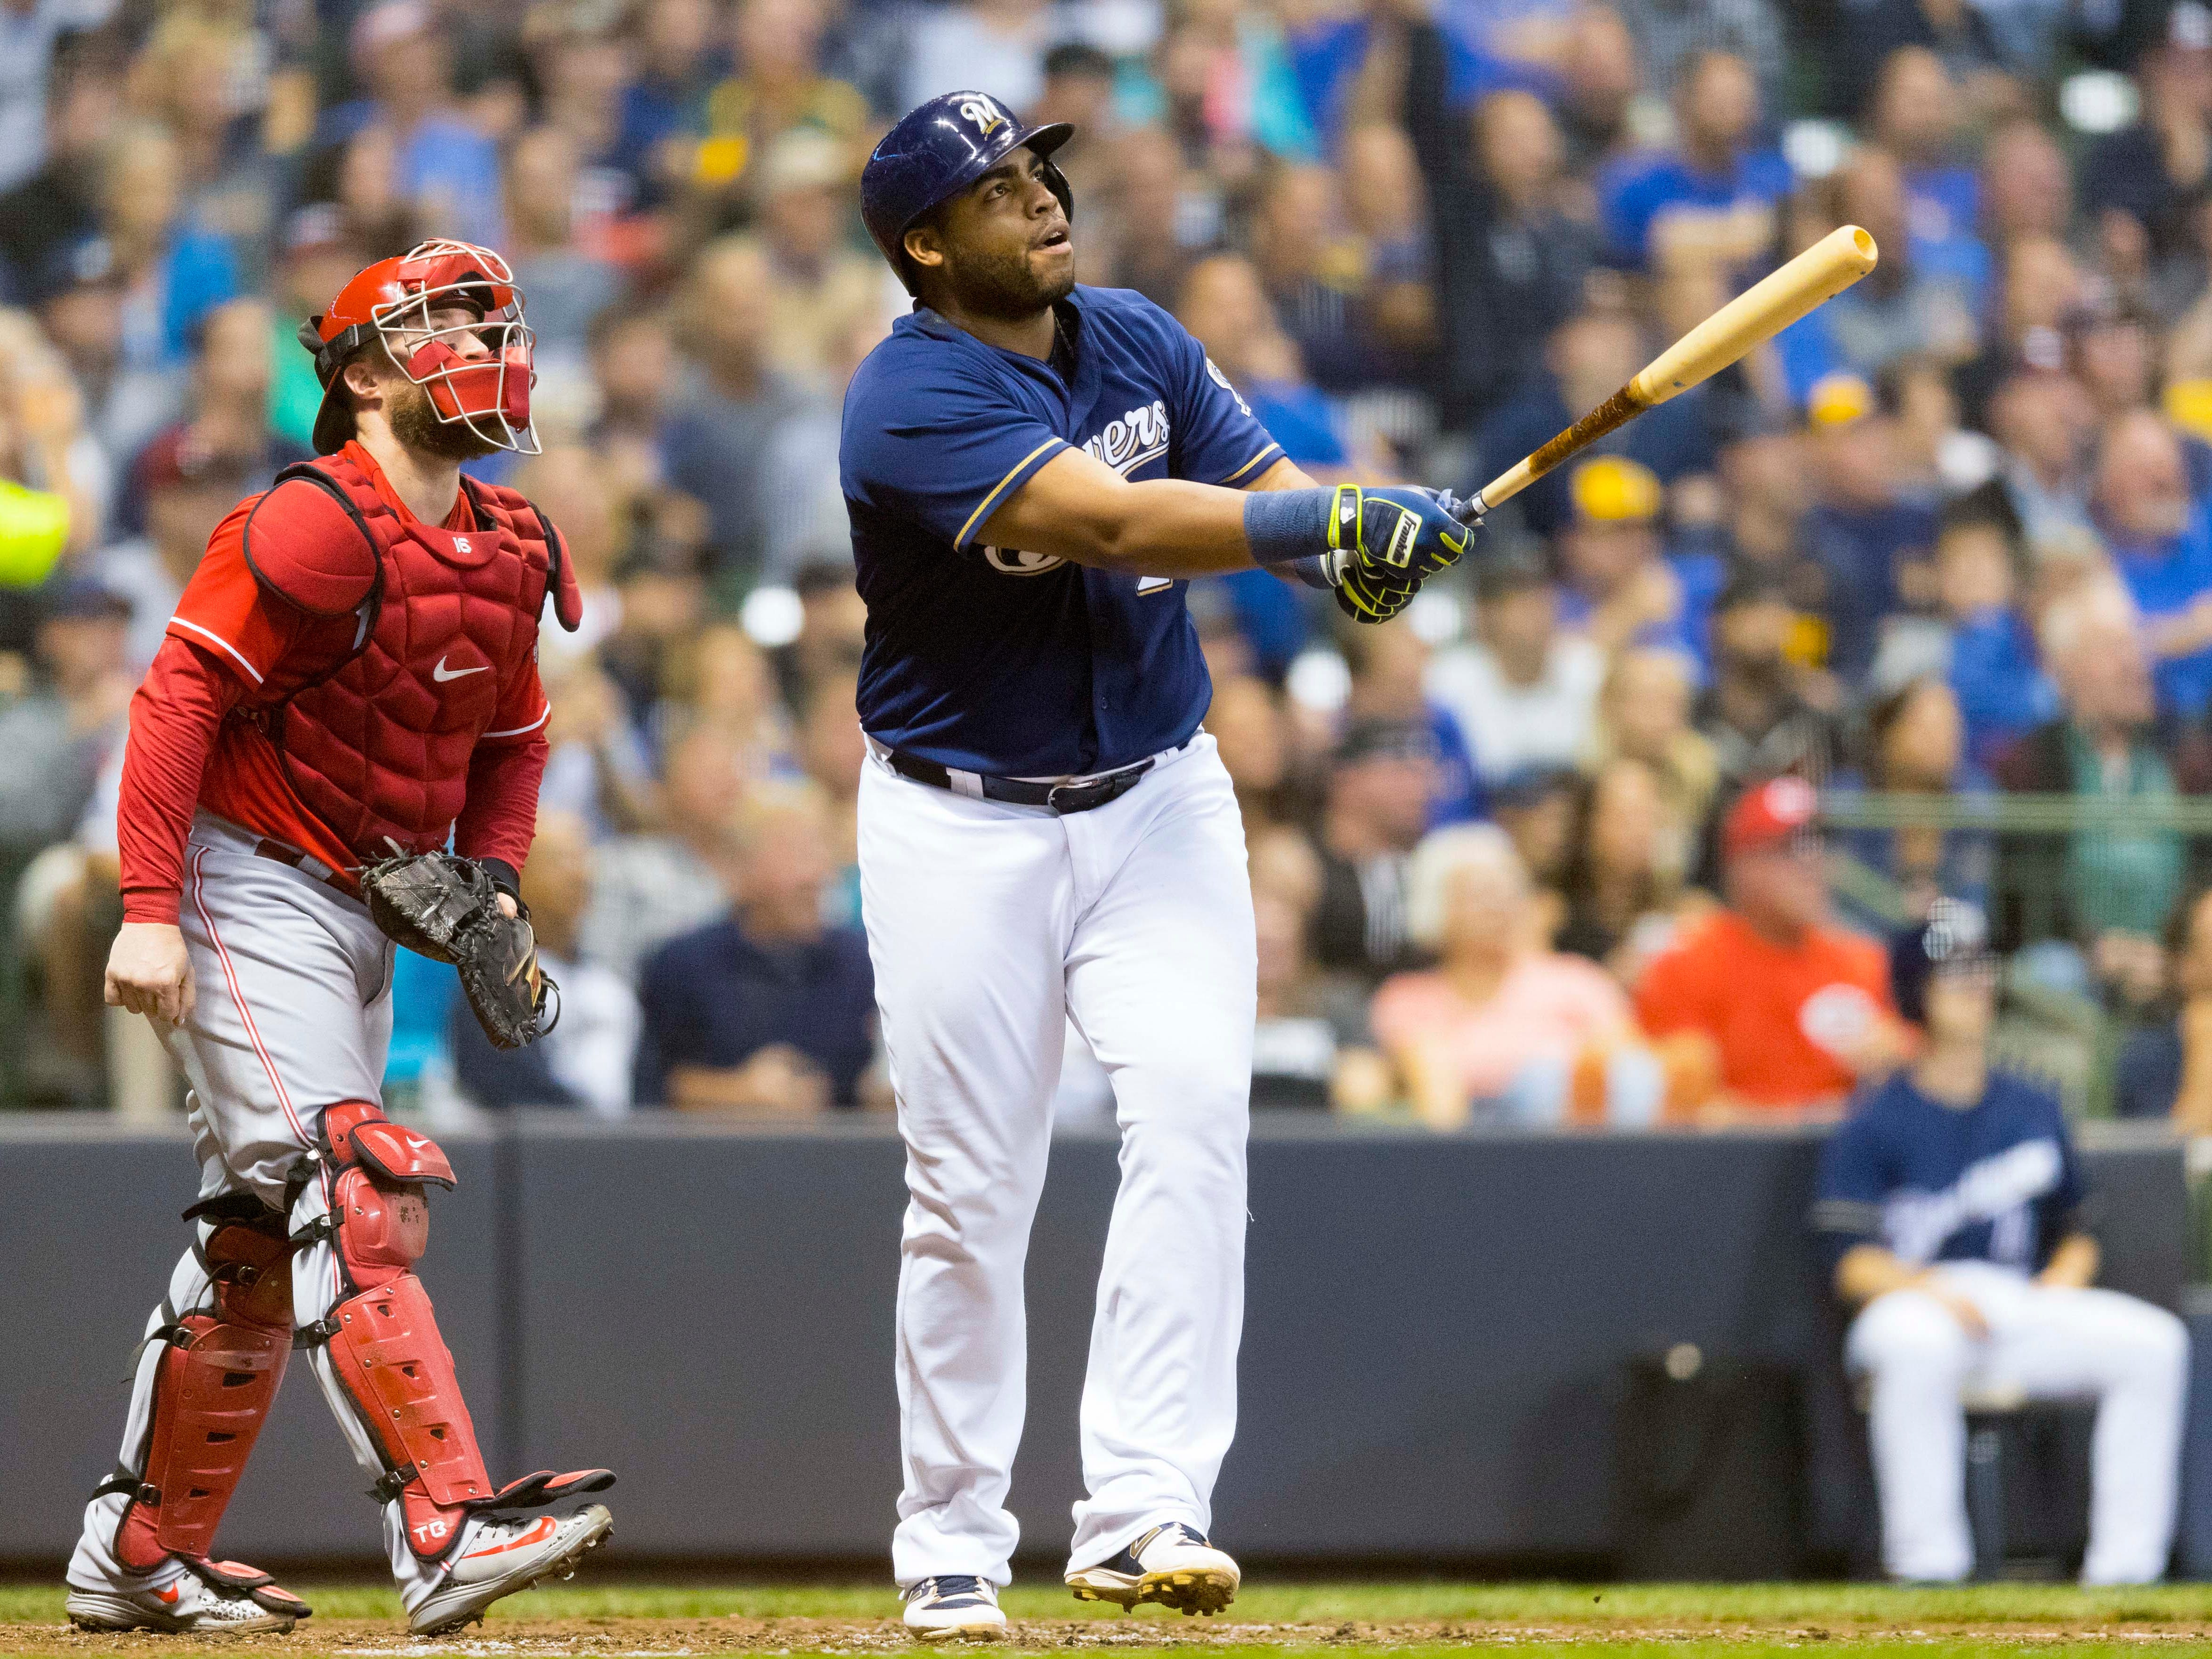 Jesus Aguilar of the Brewers and Reds catcher Tucker Barnhart watch Aguilar's three-run jack sail into the right-field bleachers on Wednesday night.